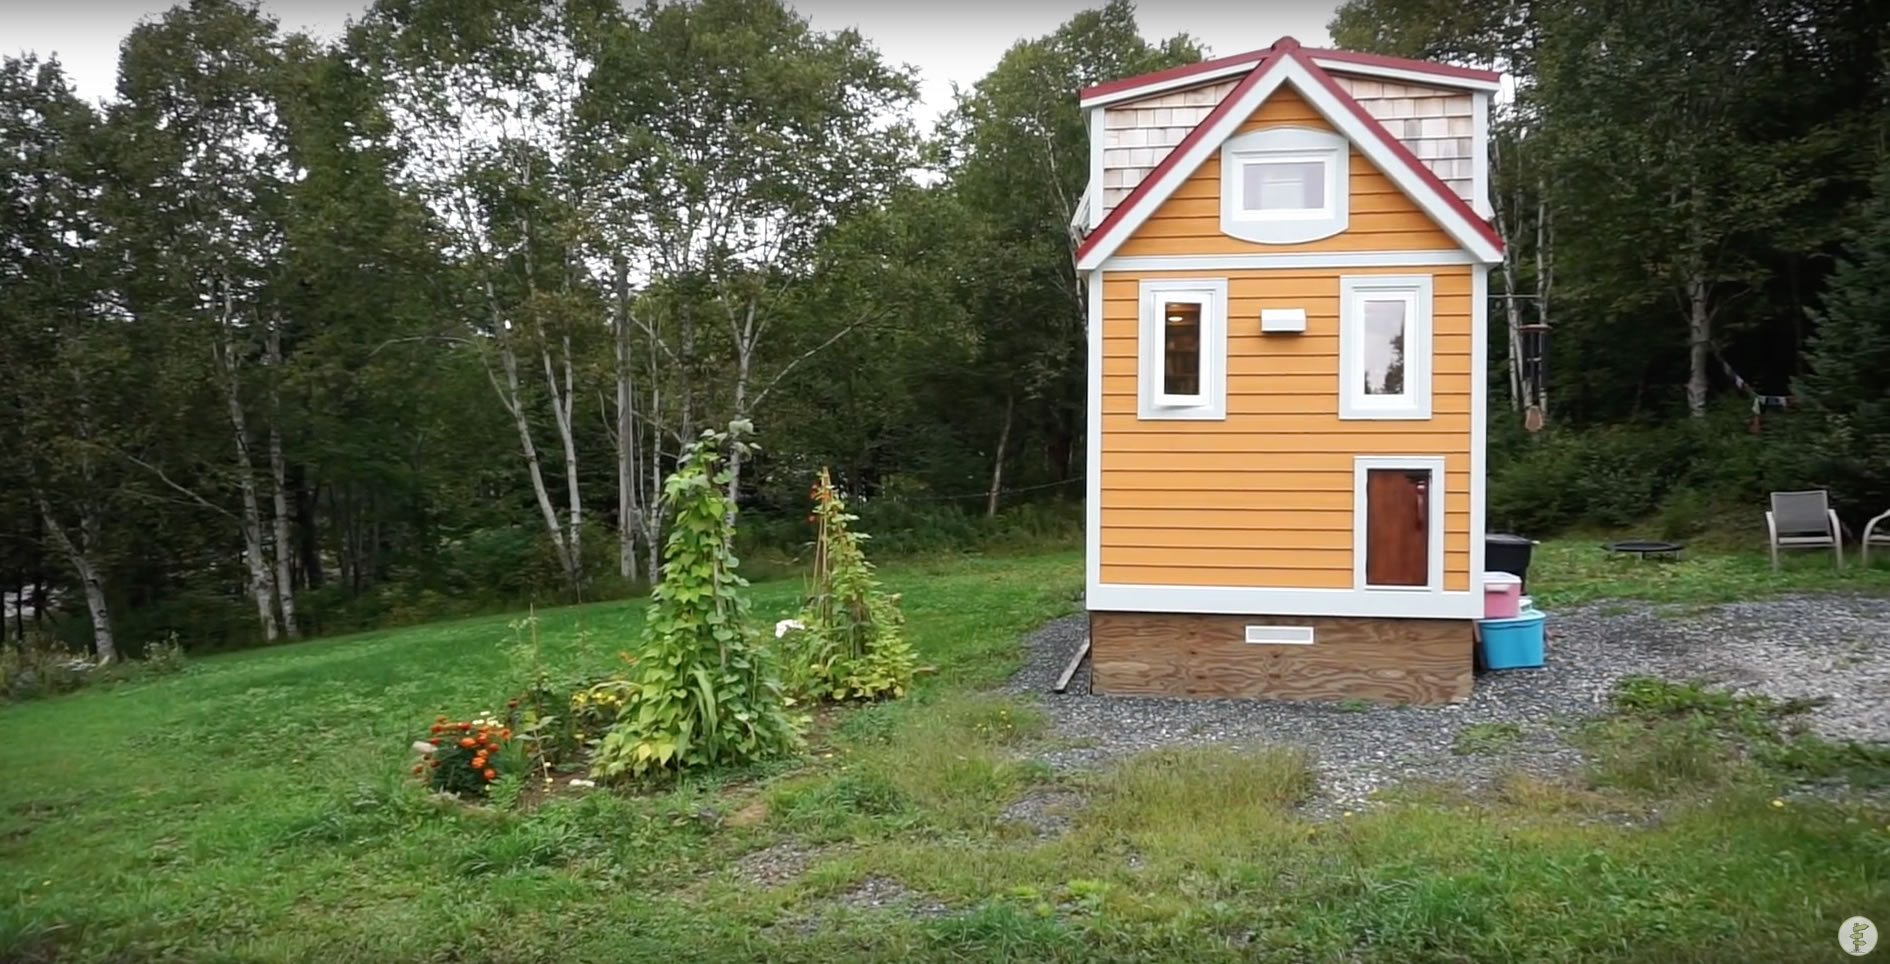 Exterior 2 - Challenges & Benefits of Tiny House Living - Couple Shares Experience